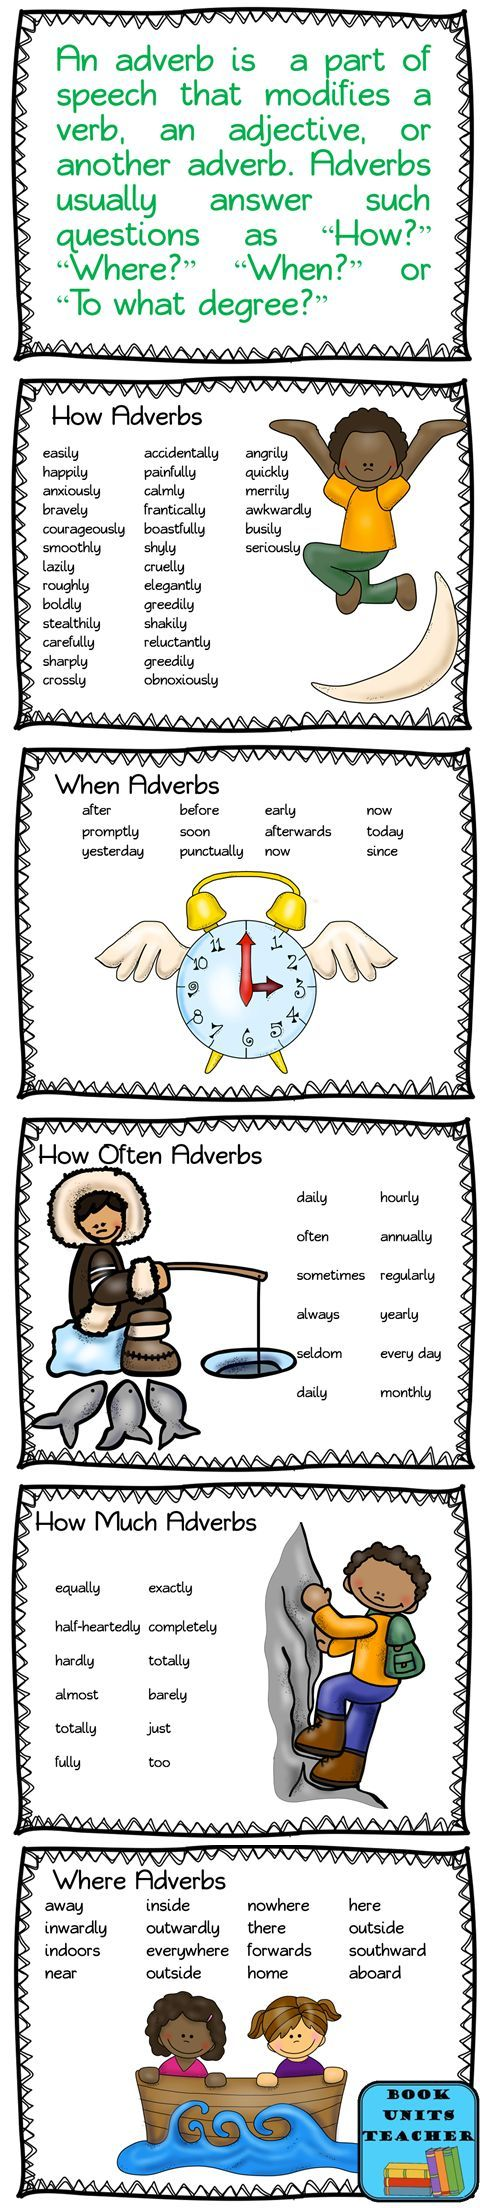 Free Printable Adverb Posters Repinned by Chesapeake College Adult Ed. We offer free classes on the Eastern Shore of MD to help you earn your GED - H.S. Diploma or Learn English (ESL). www.Chesapeake.edu